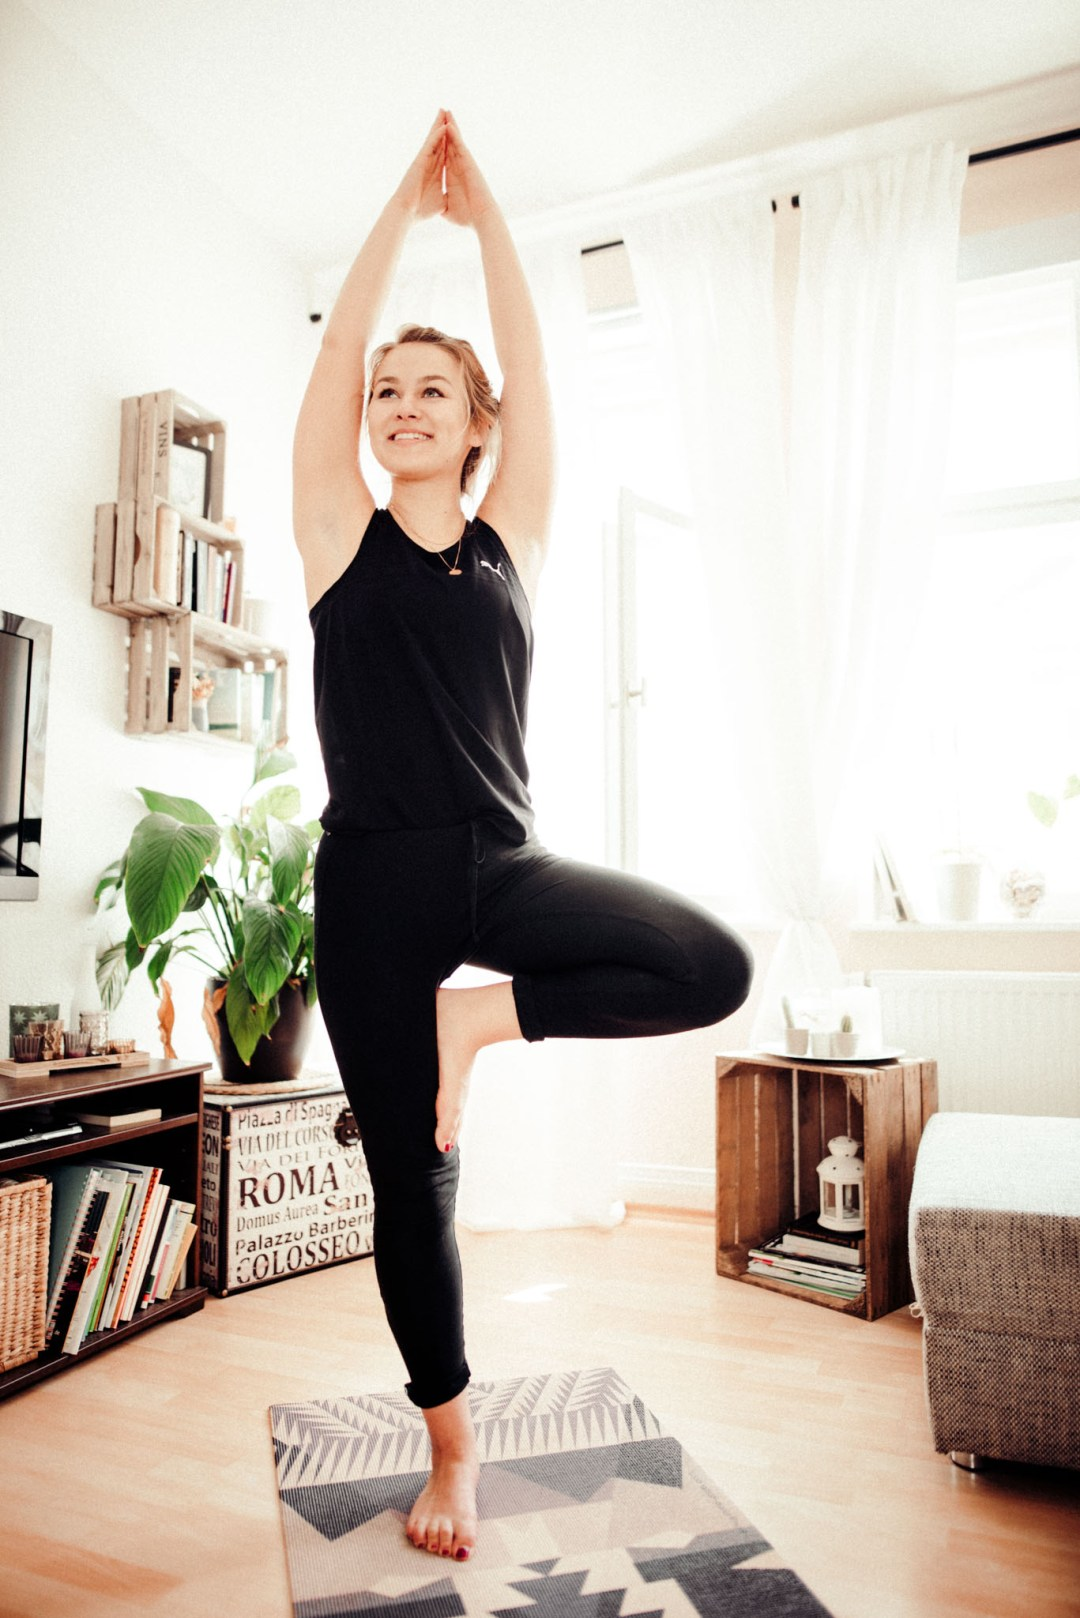 Gym oder Homeworkout? - die beste Yoga-App